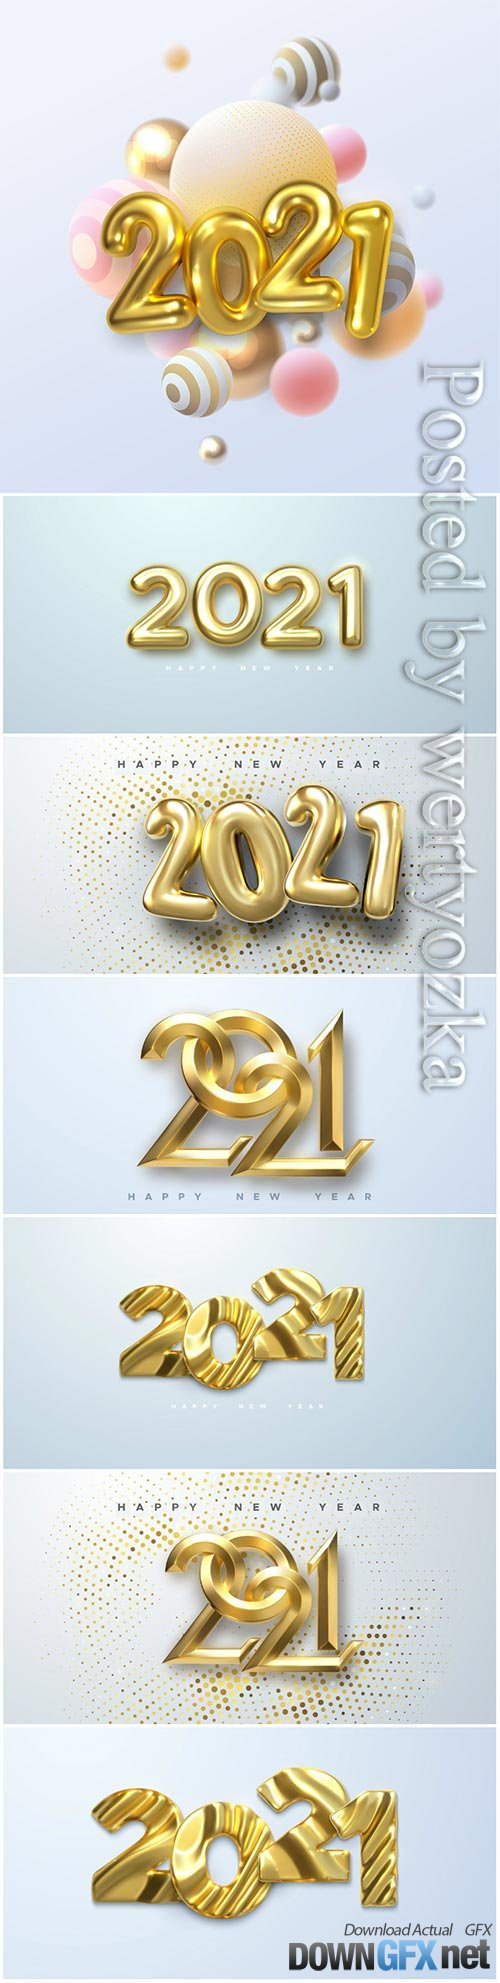 Gold numbers 2021 for new year illustration